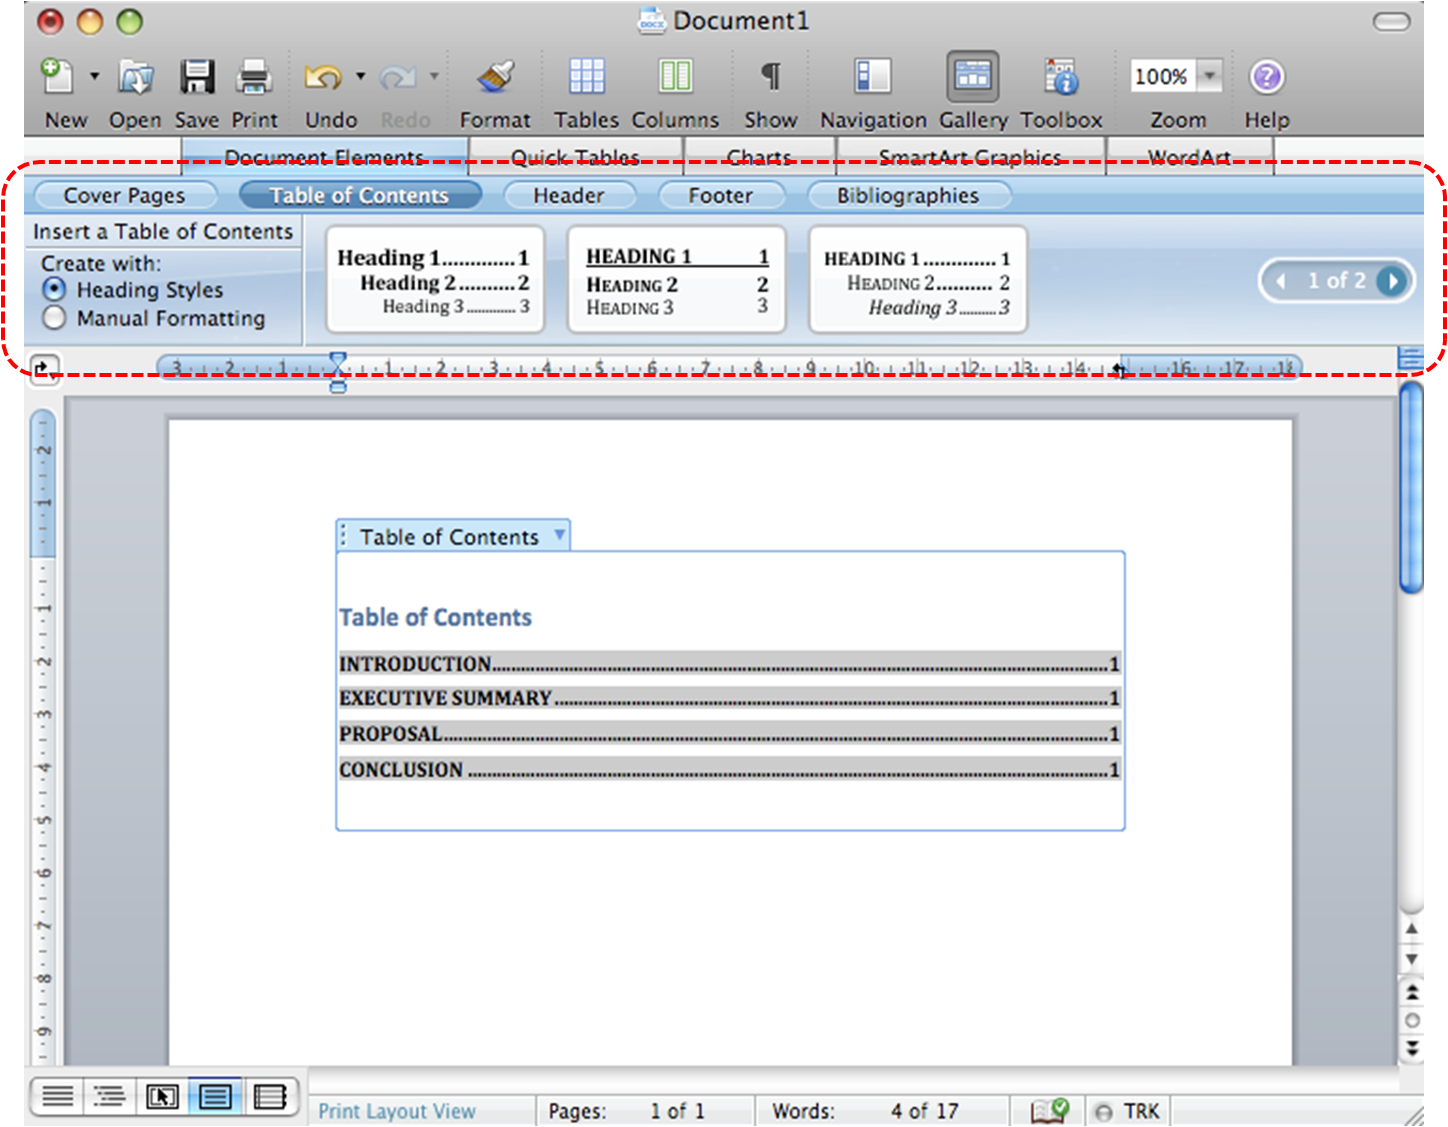 Image Demonstrates Location Of Table Of Contents Section Above The Document  Pane In The Application Window